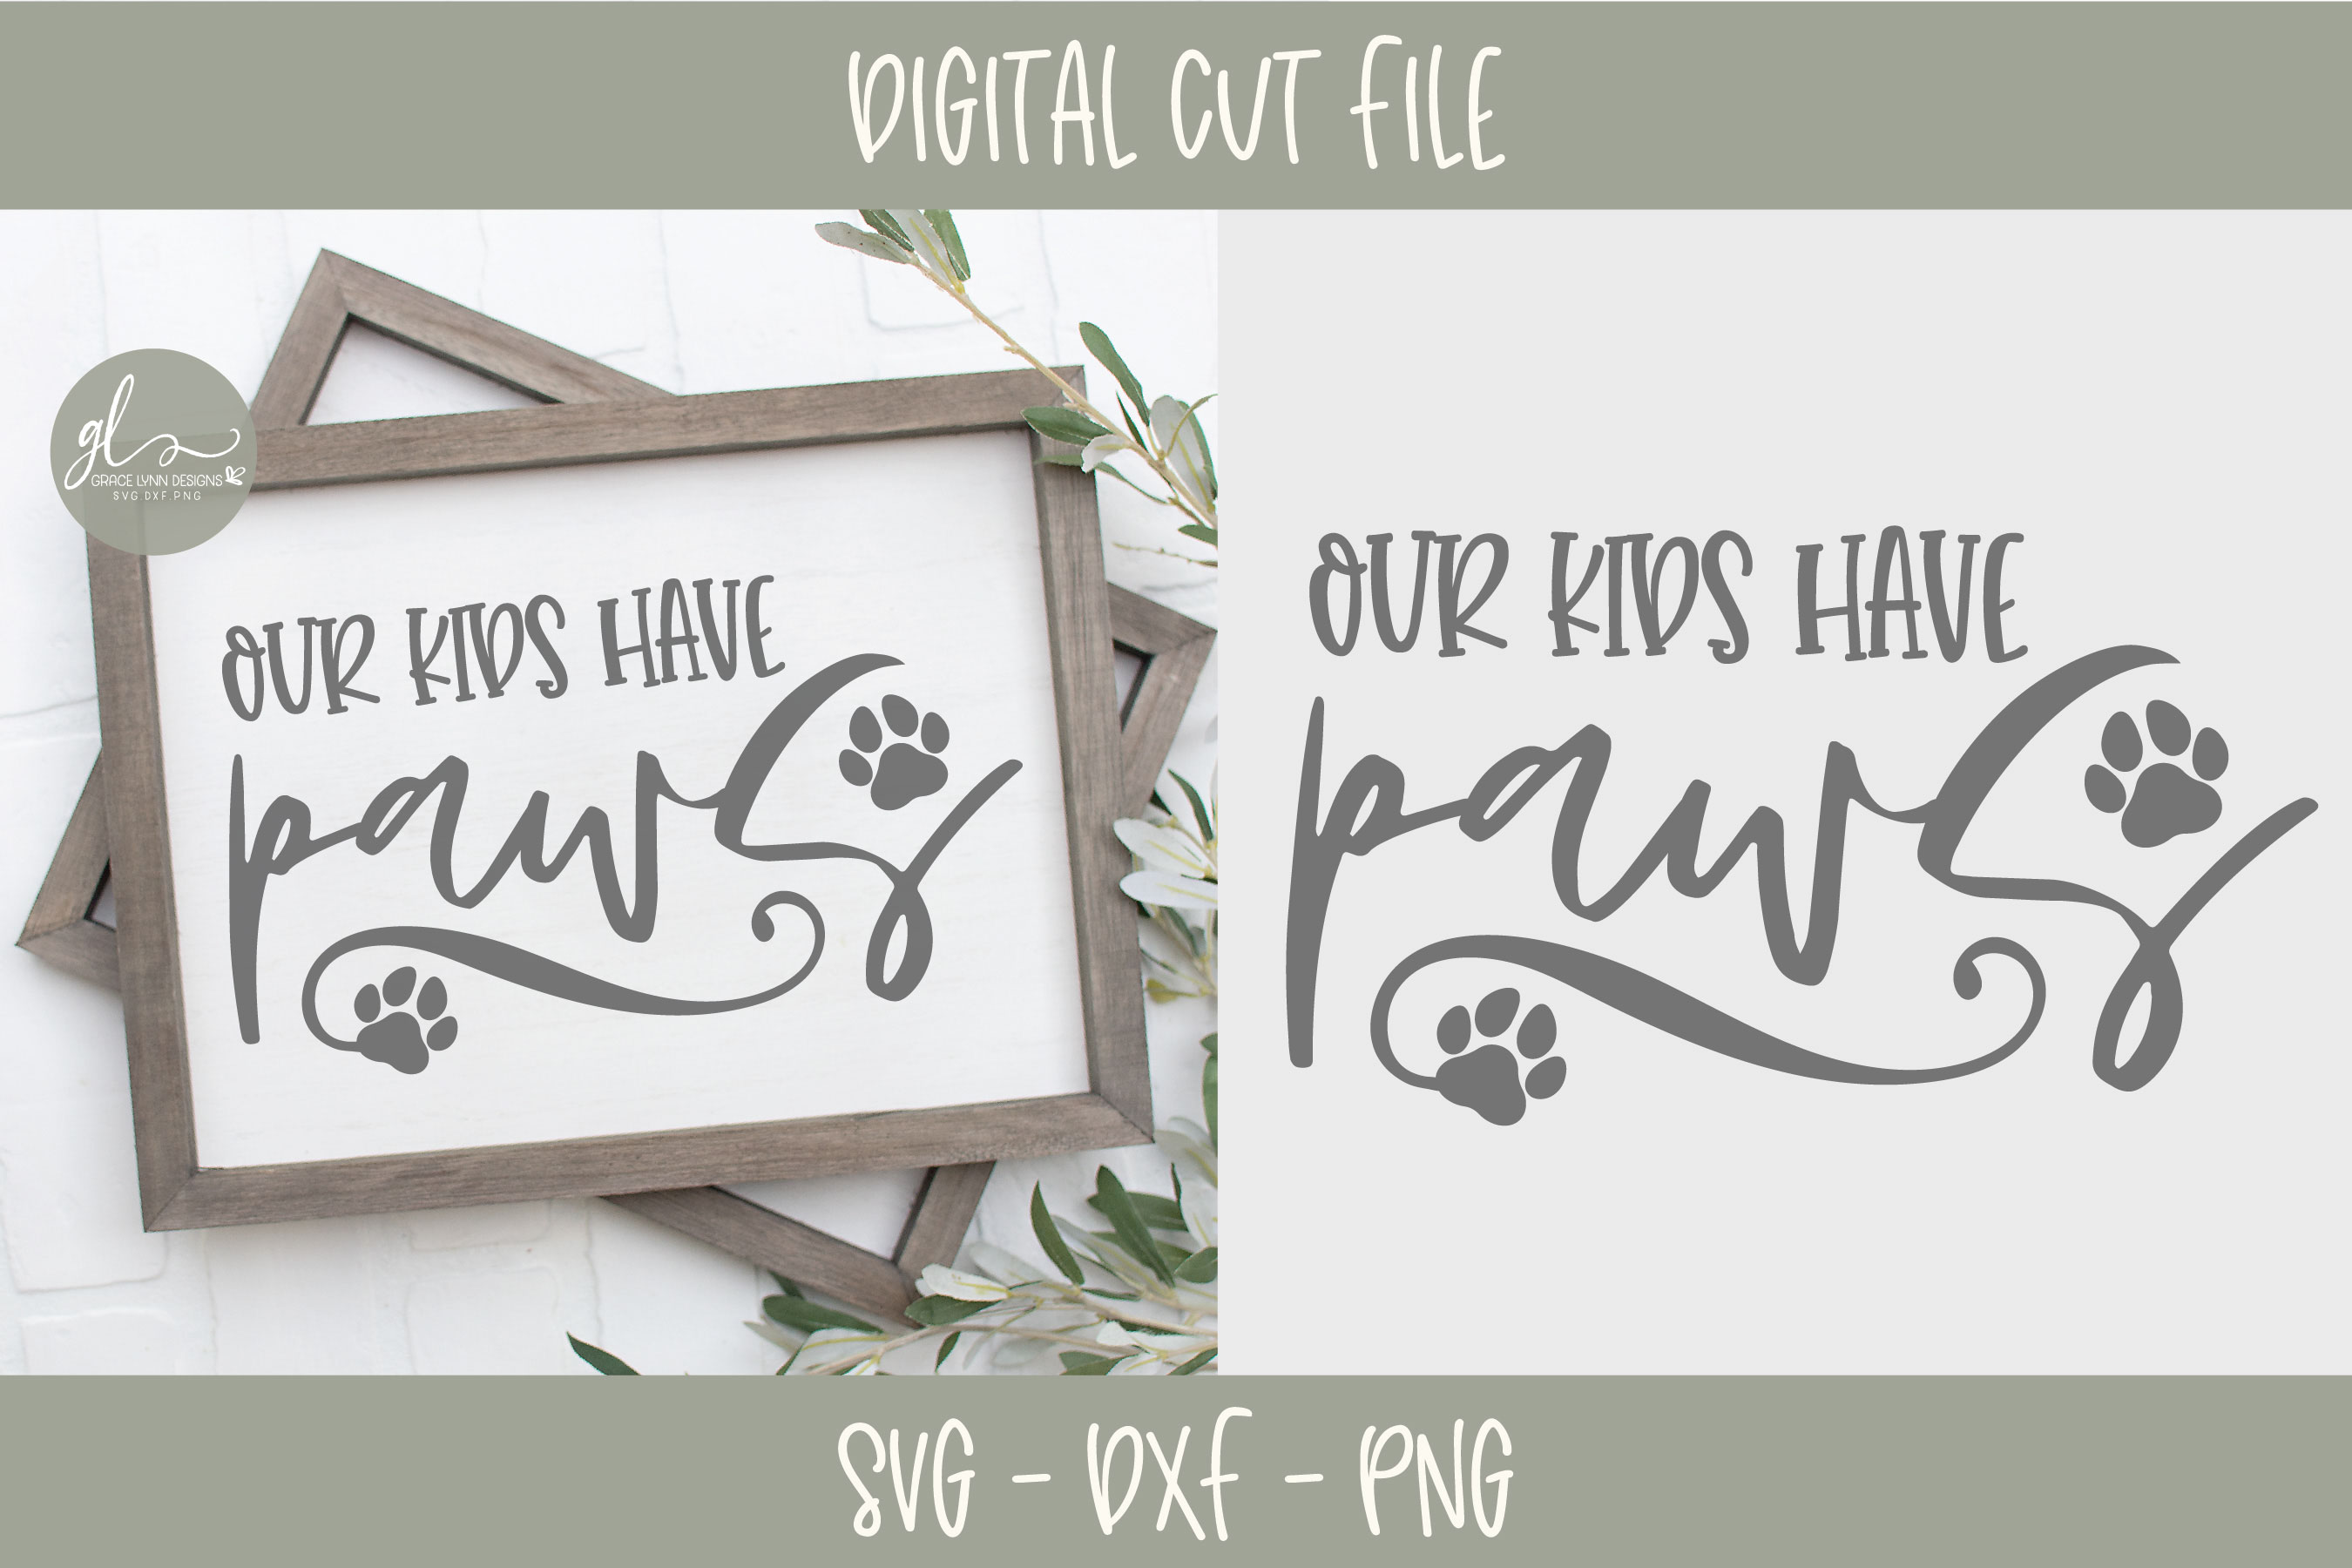 Our Kids Have Paws - SVG example image 1